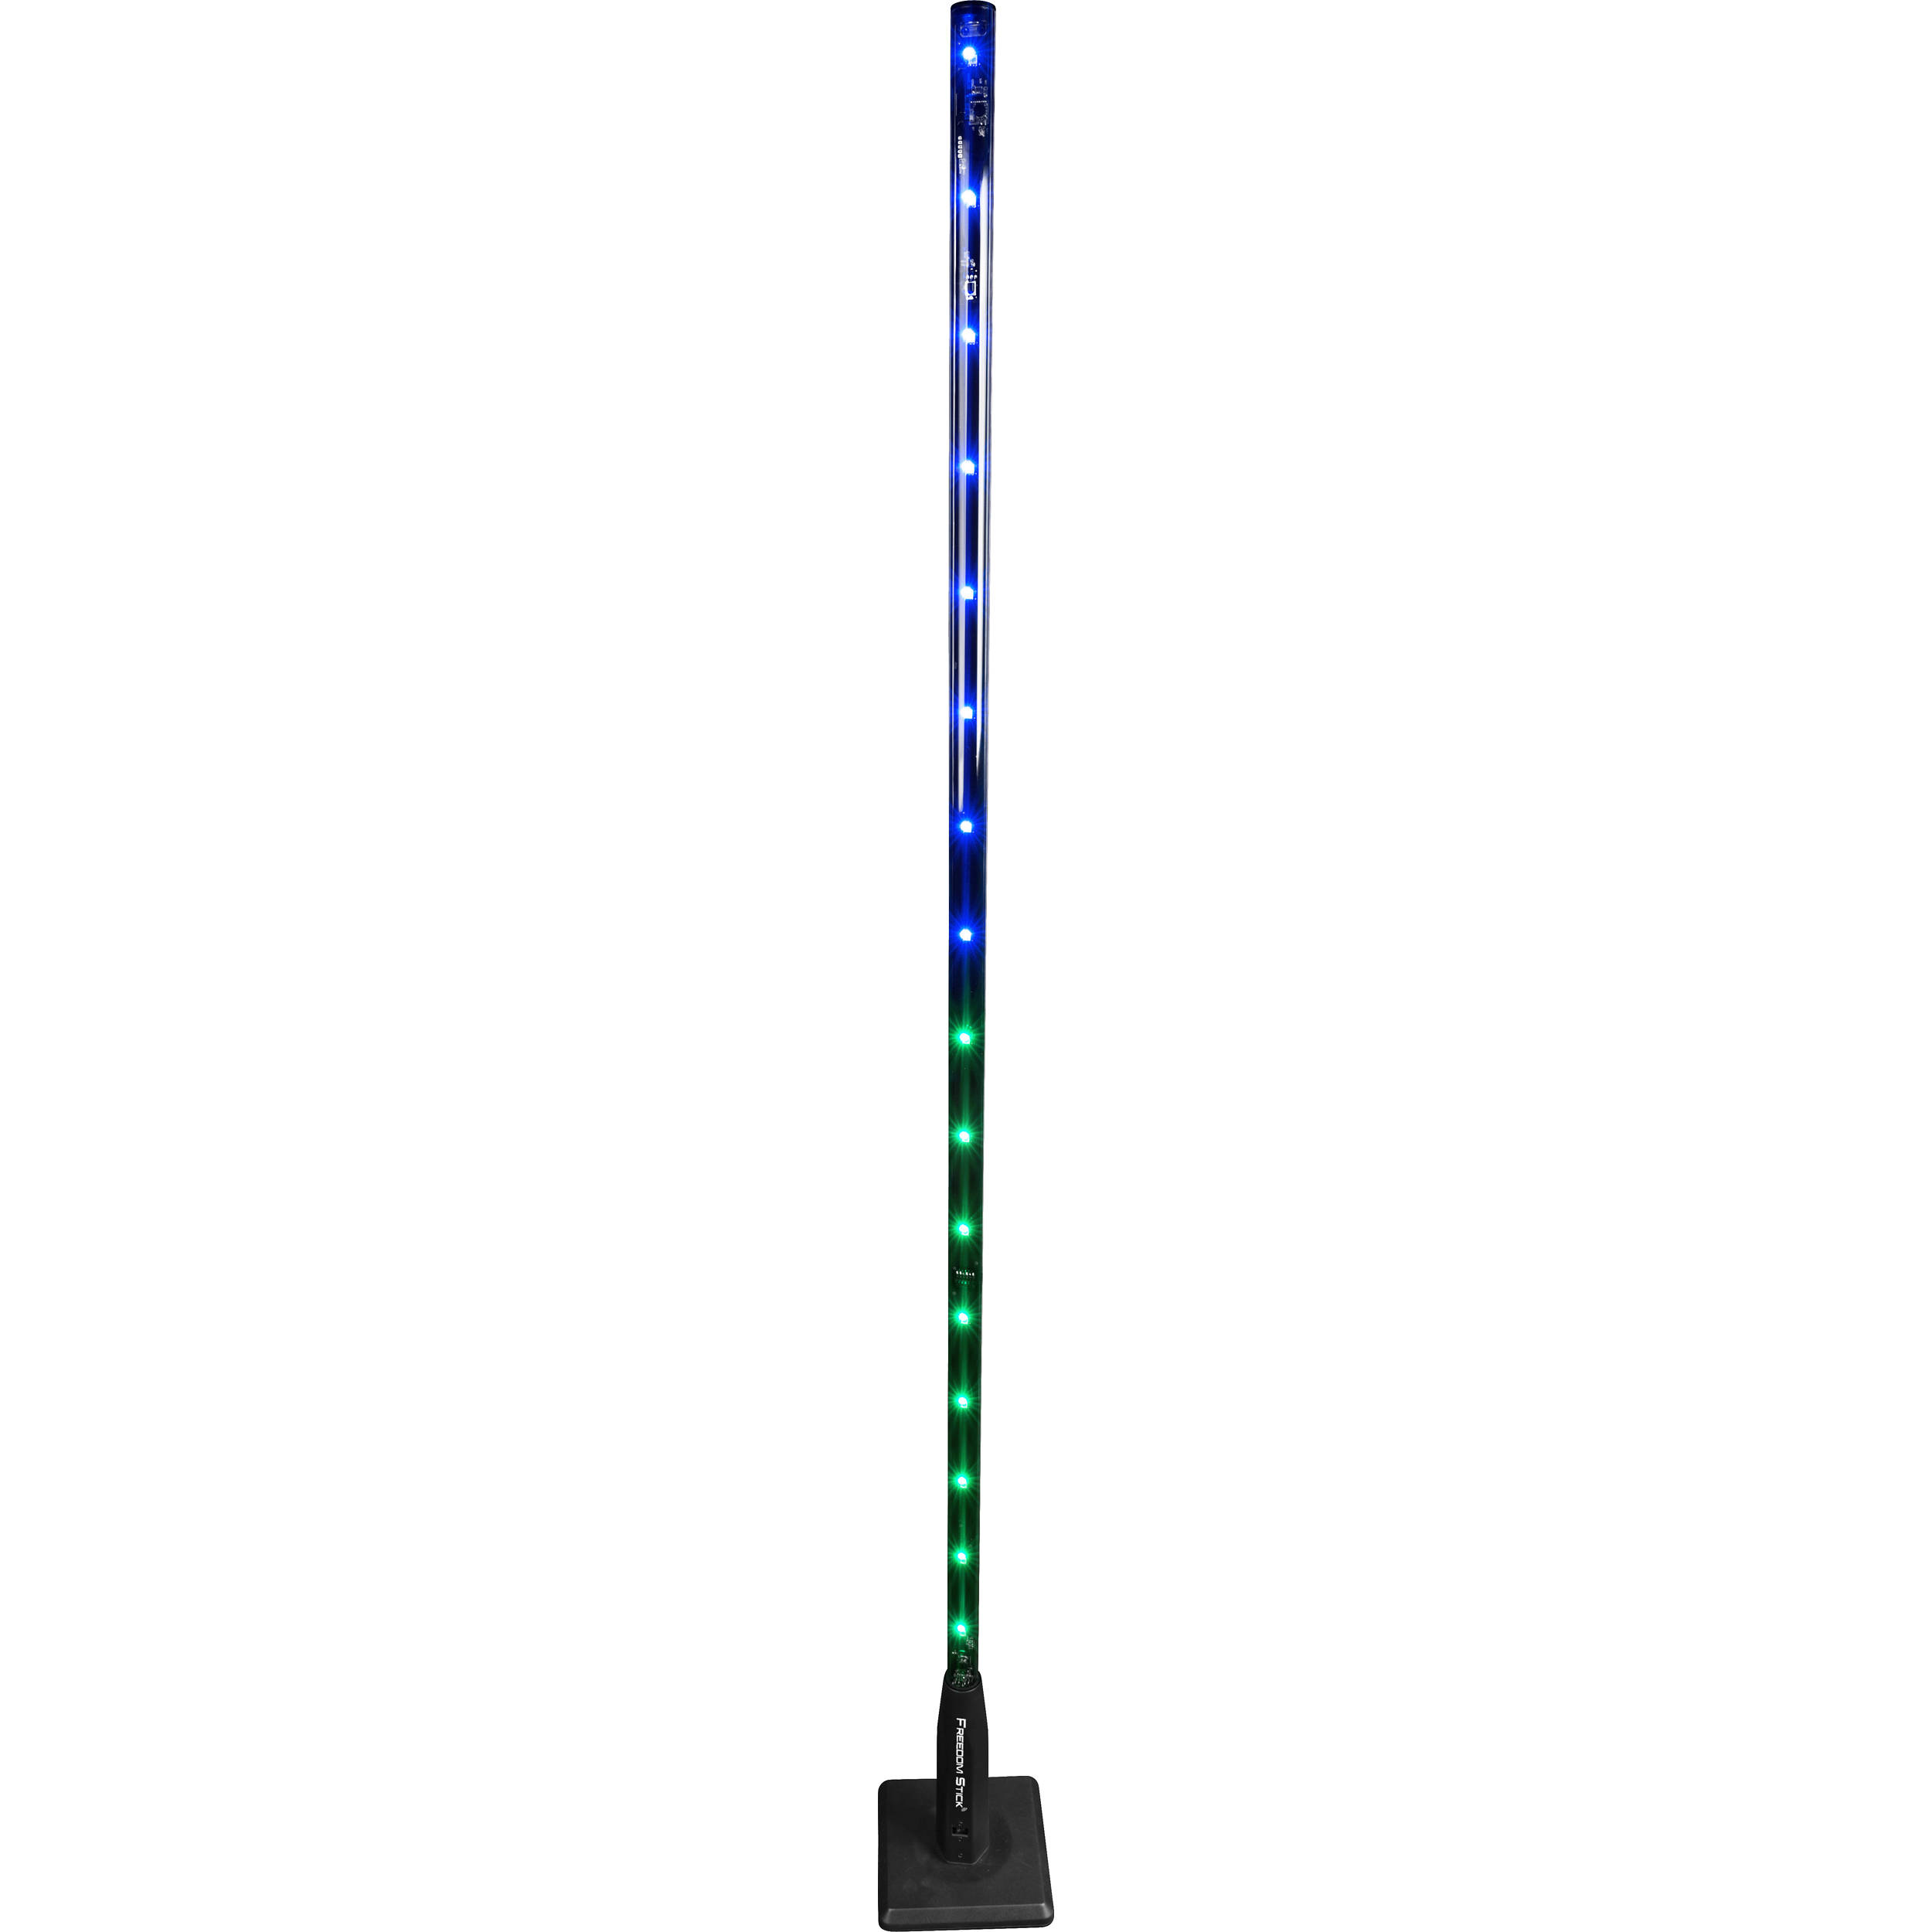 Chauvet DJ Freedom Stick